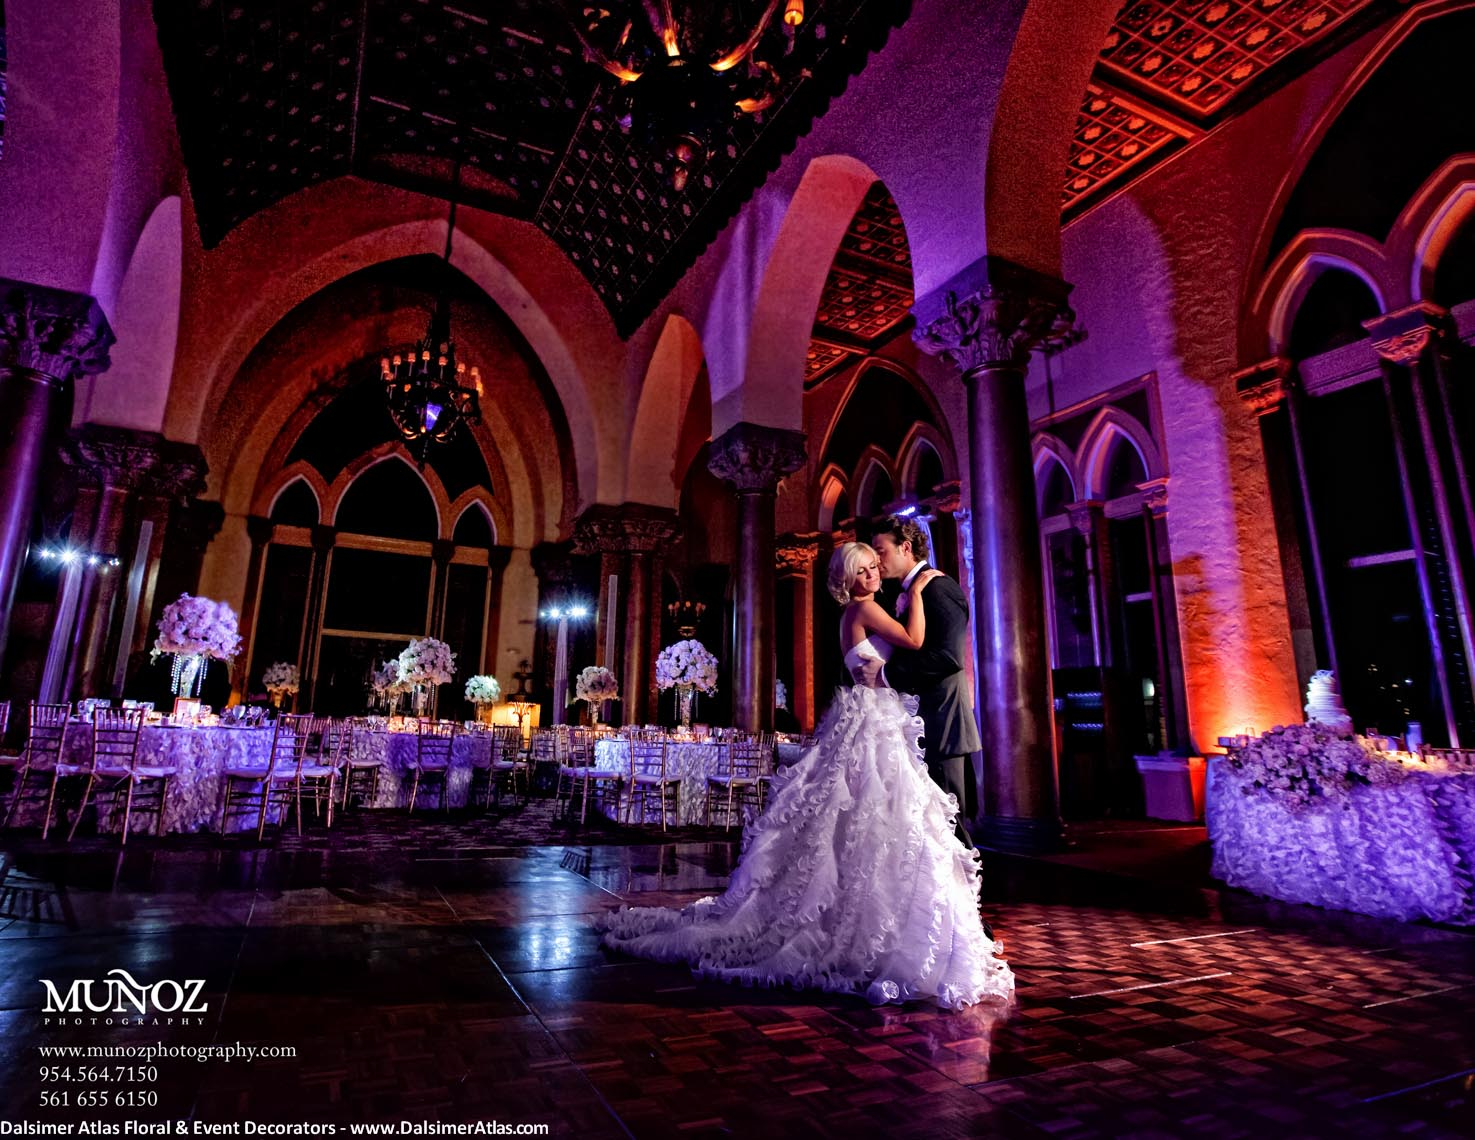 A Recent Wedding You Attended In Boca Raton